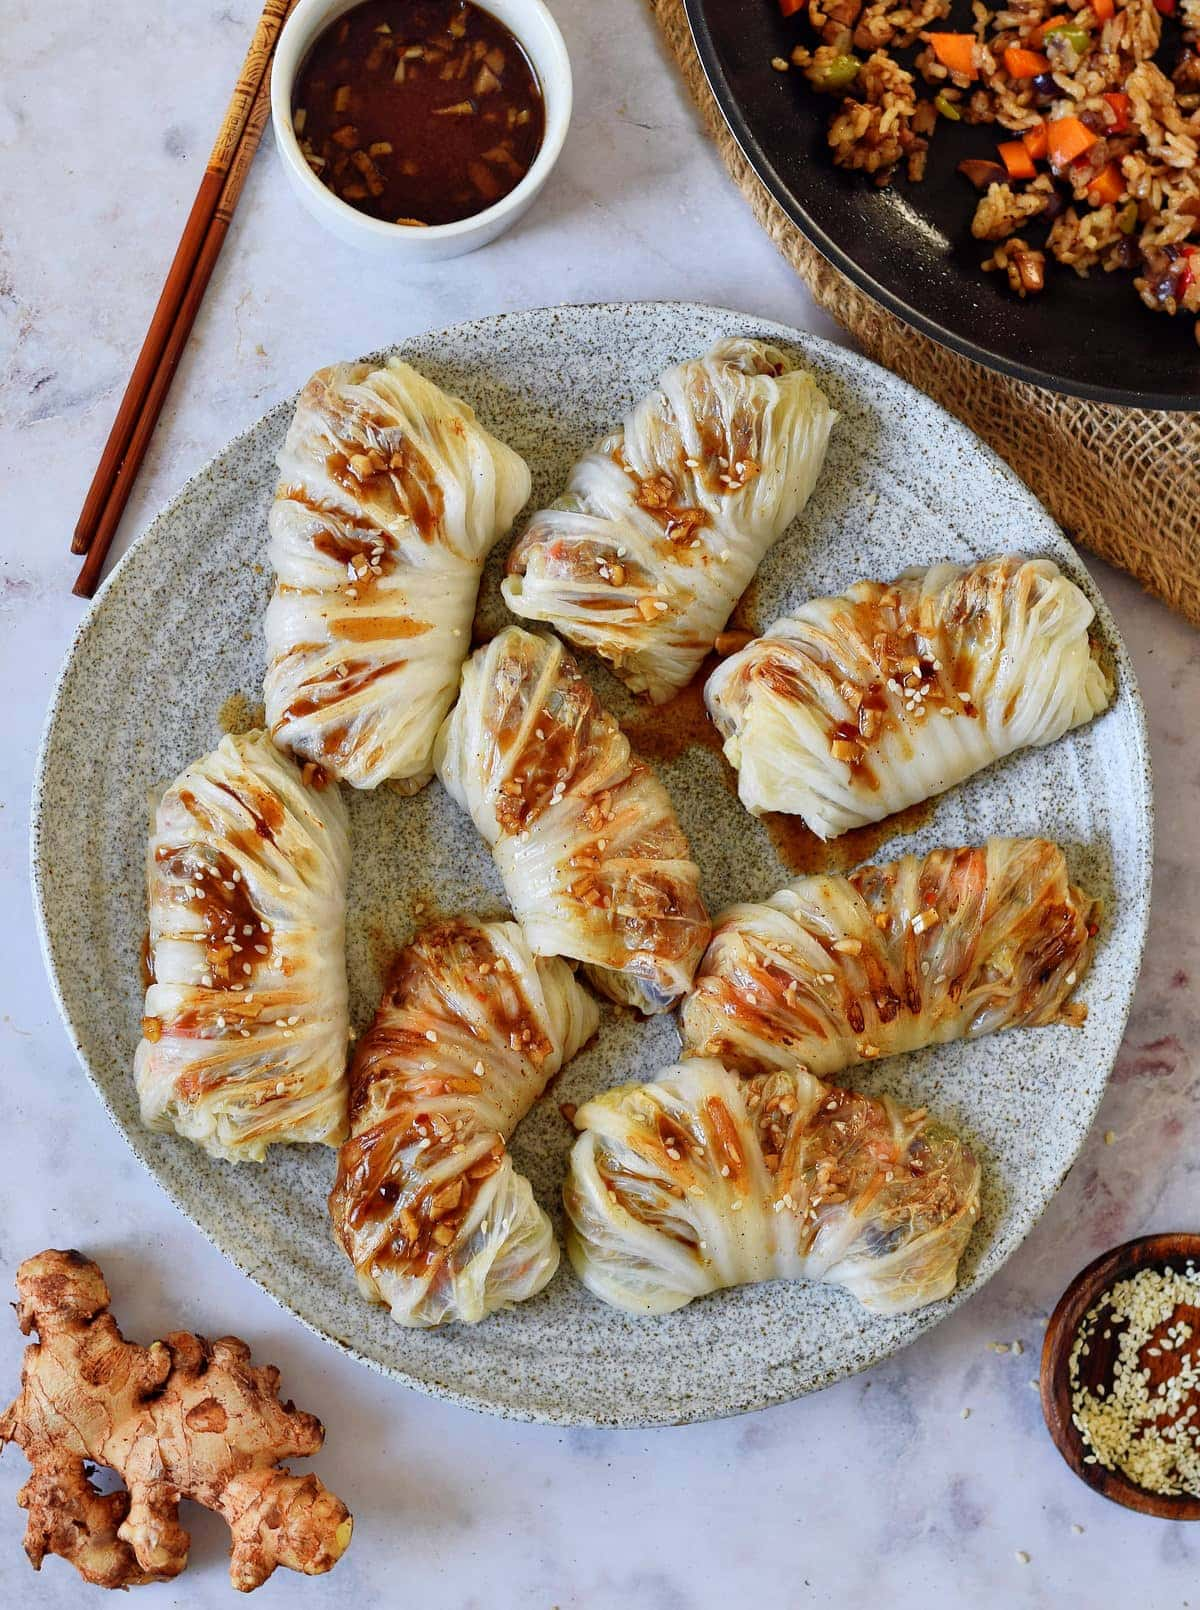 stuffed cabbage rolls on large gray plate